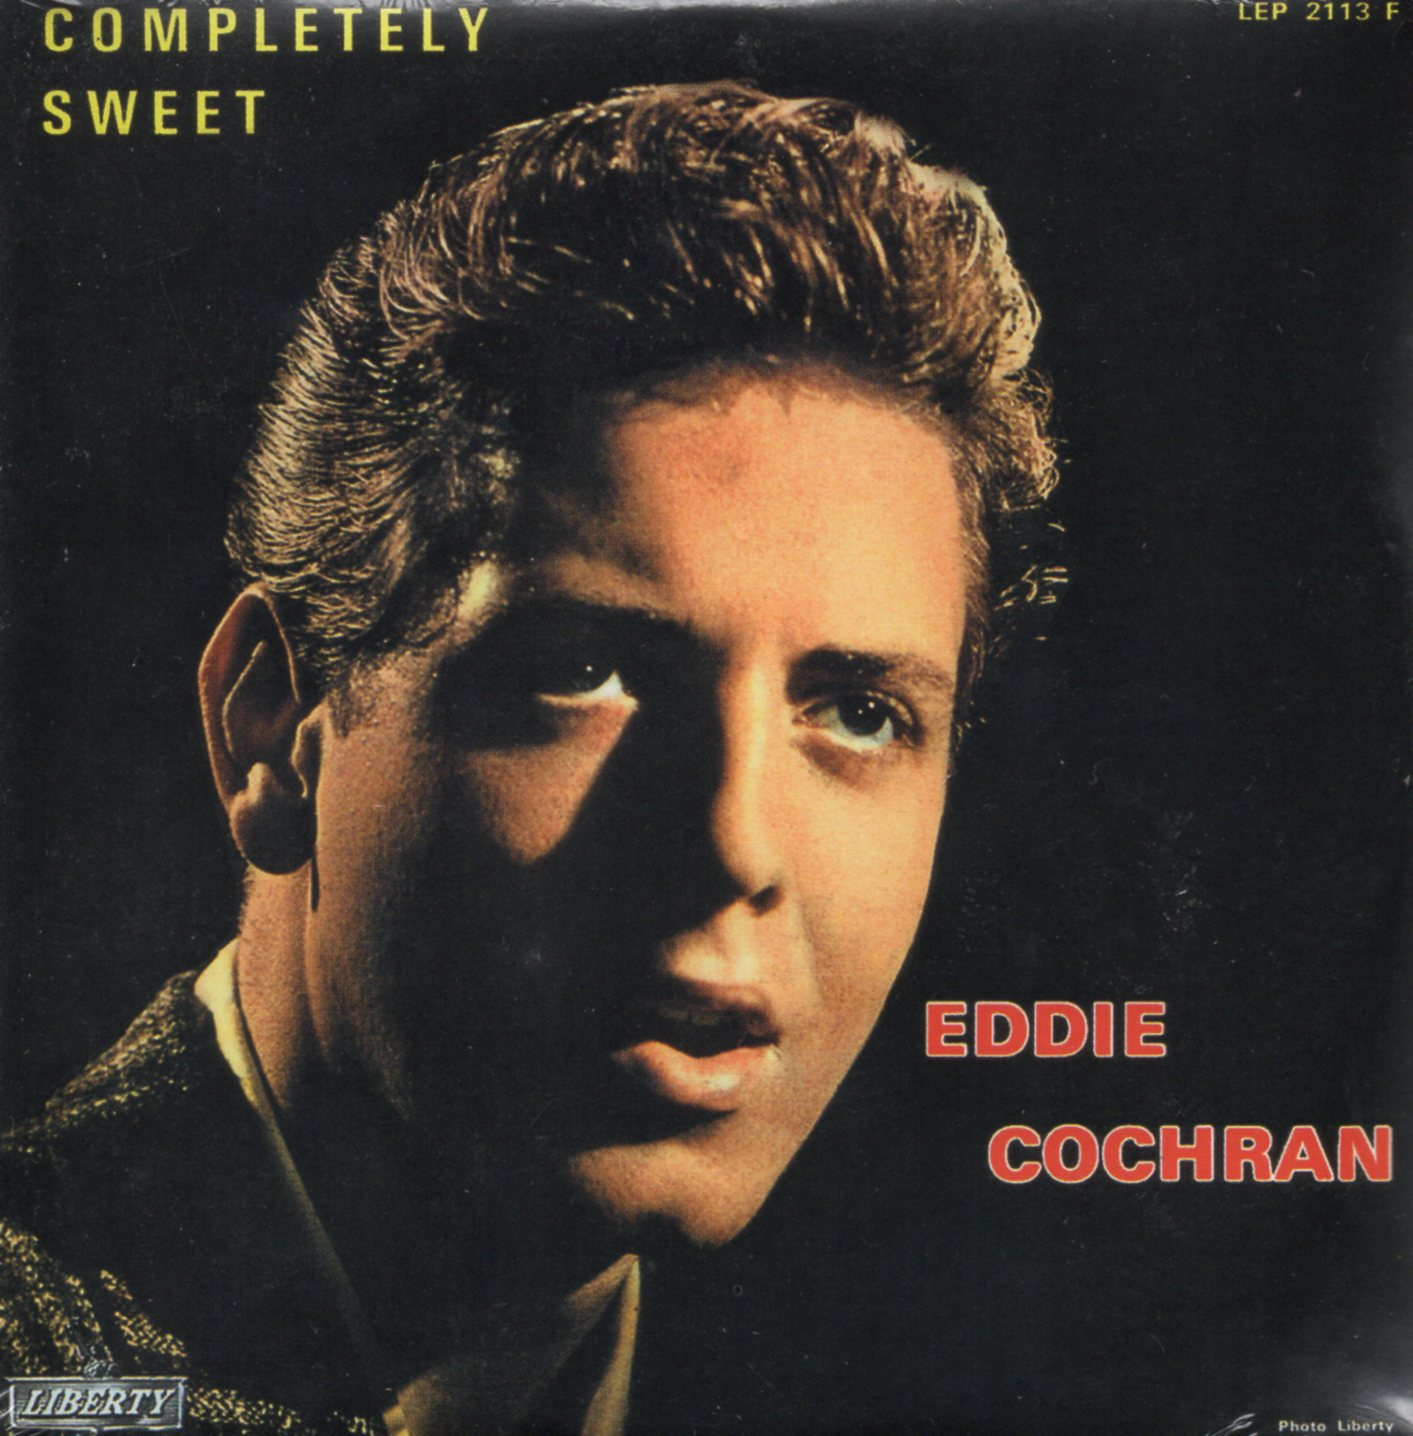 EDDIE COCHRAN - Completely Sweet 4-track CARD SLEEVE - CD single